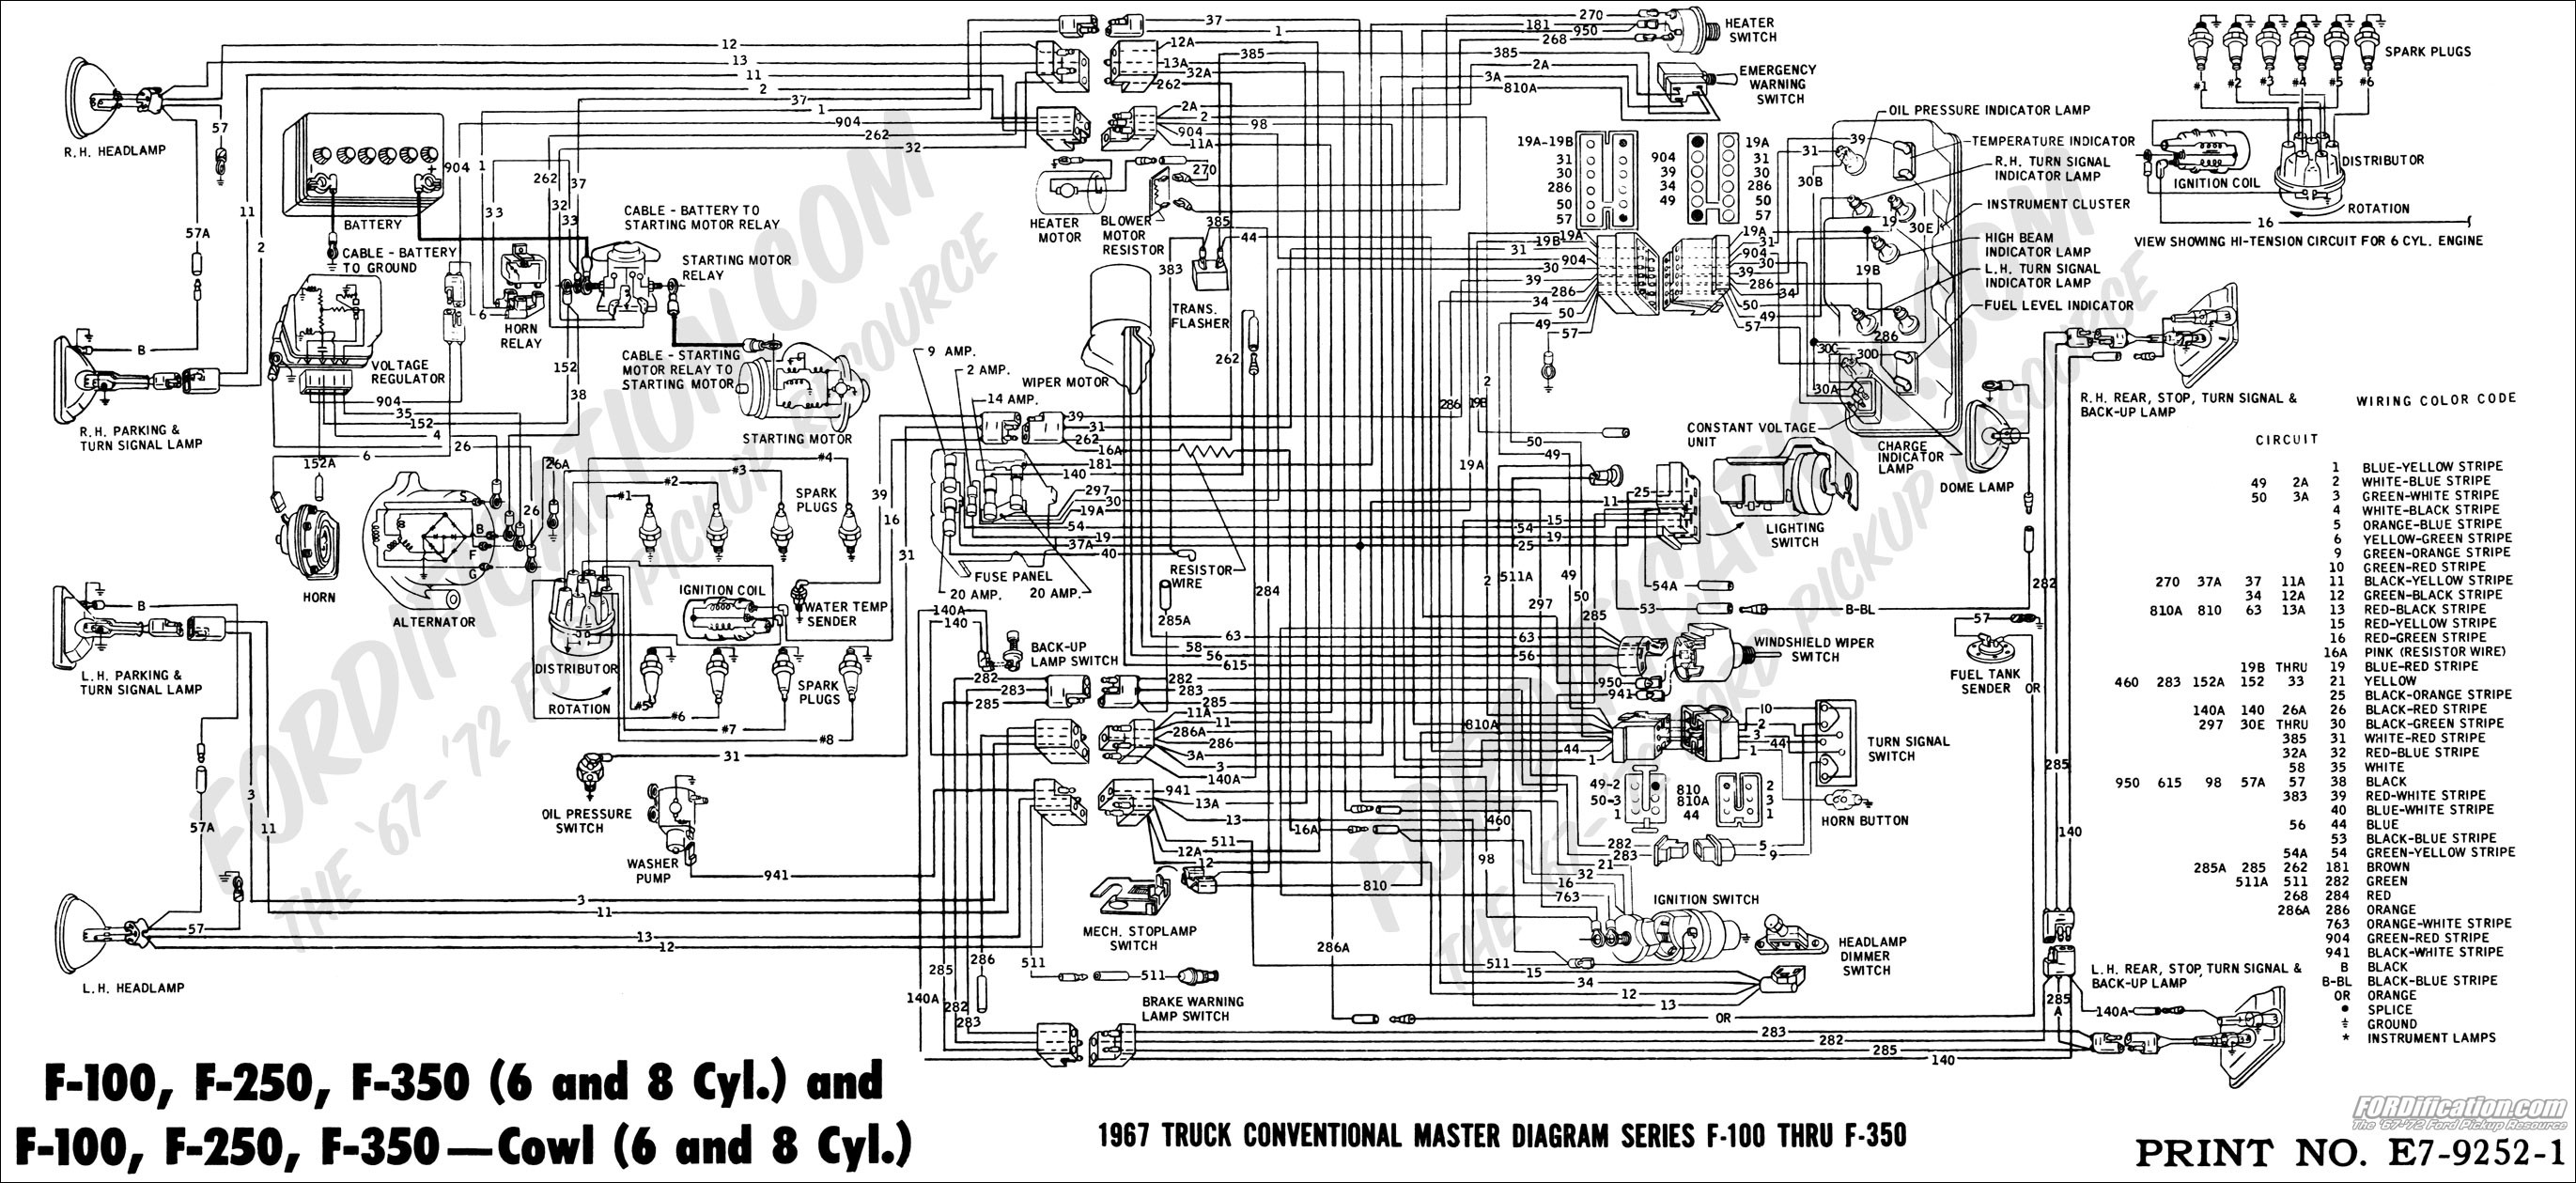 Ignition Wiring Diagram For 1977 F150 - Wiring Data